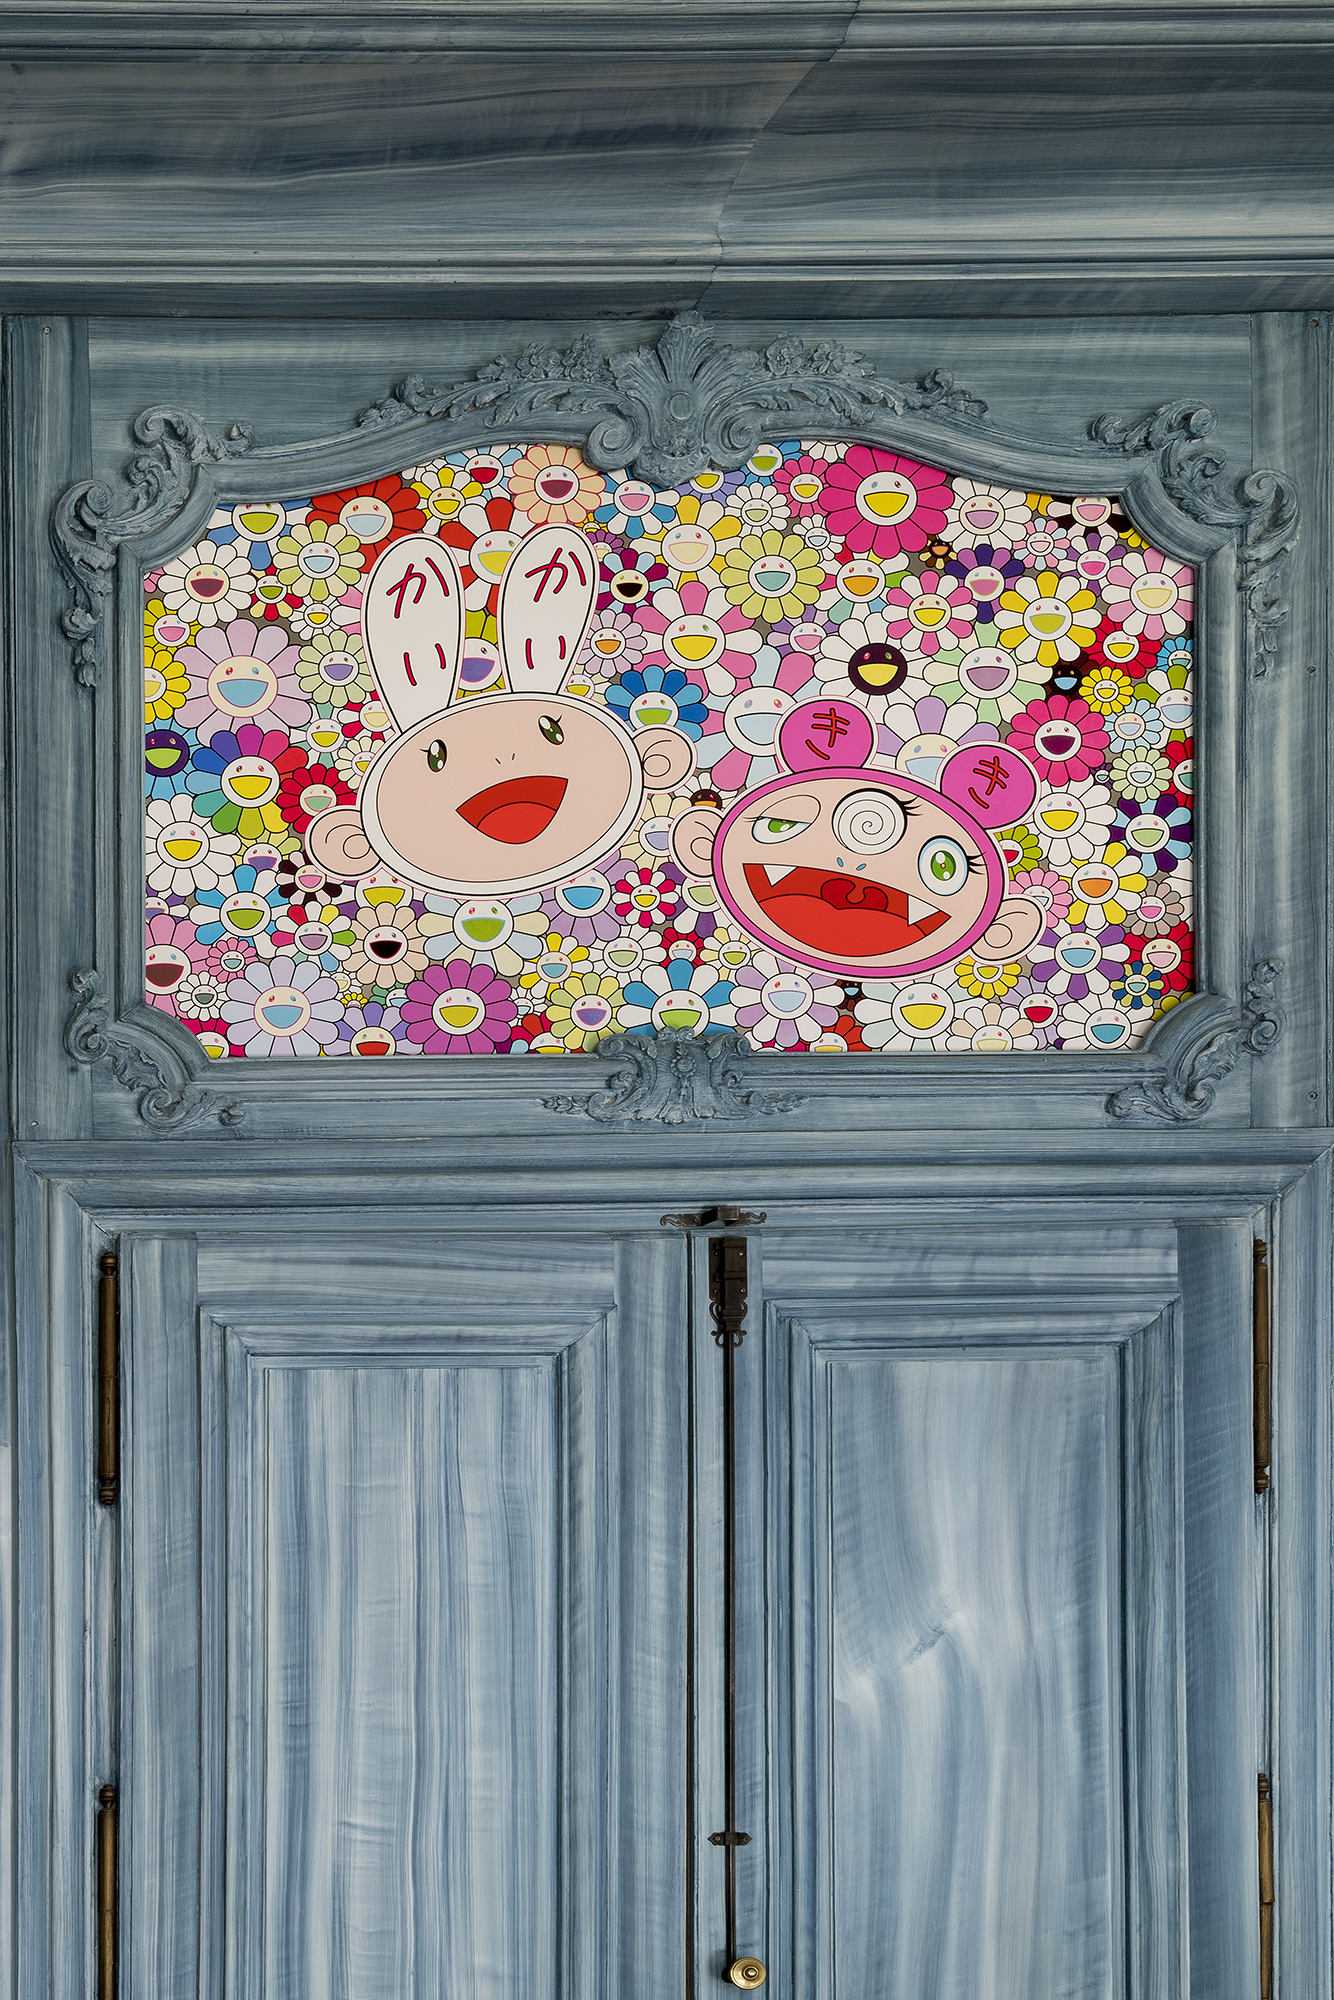 Detail of a dining room Louis XVI boiserie scheme enhances by Takashi Murakami artwork